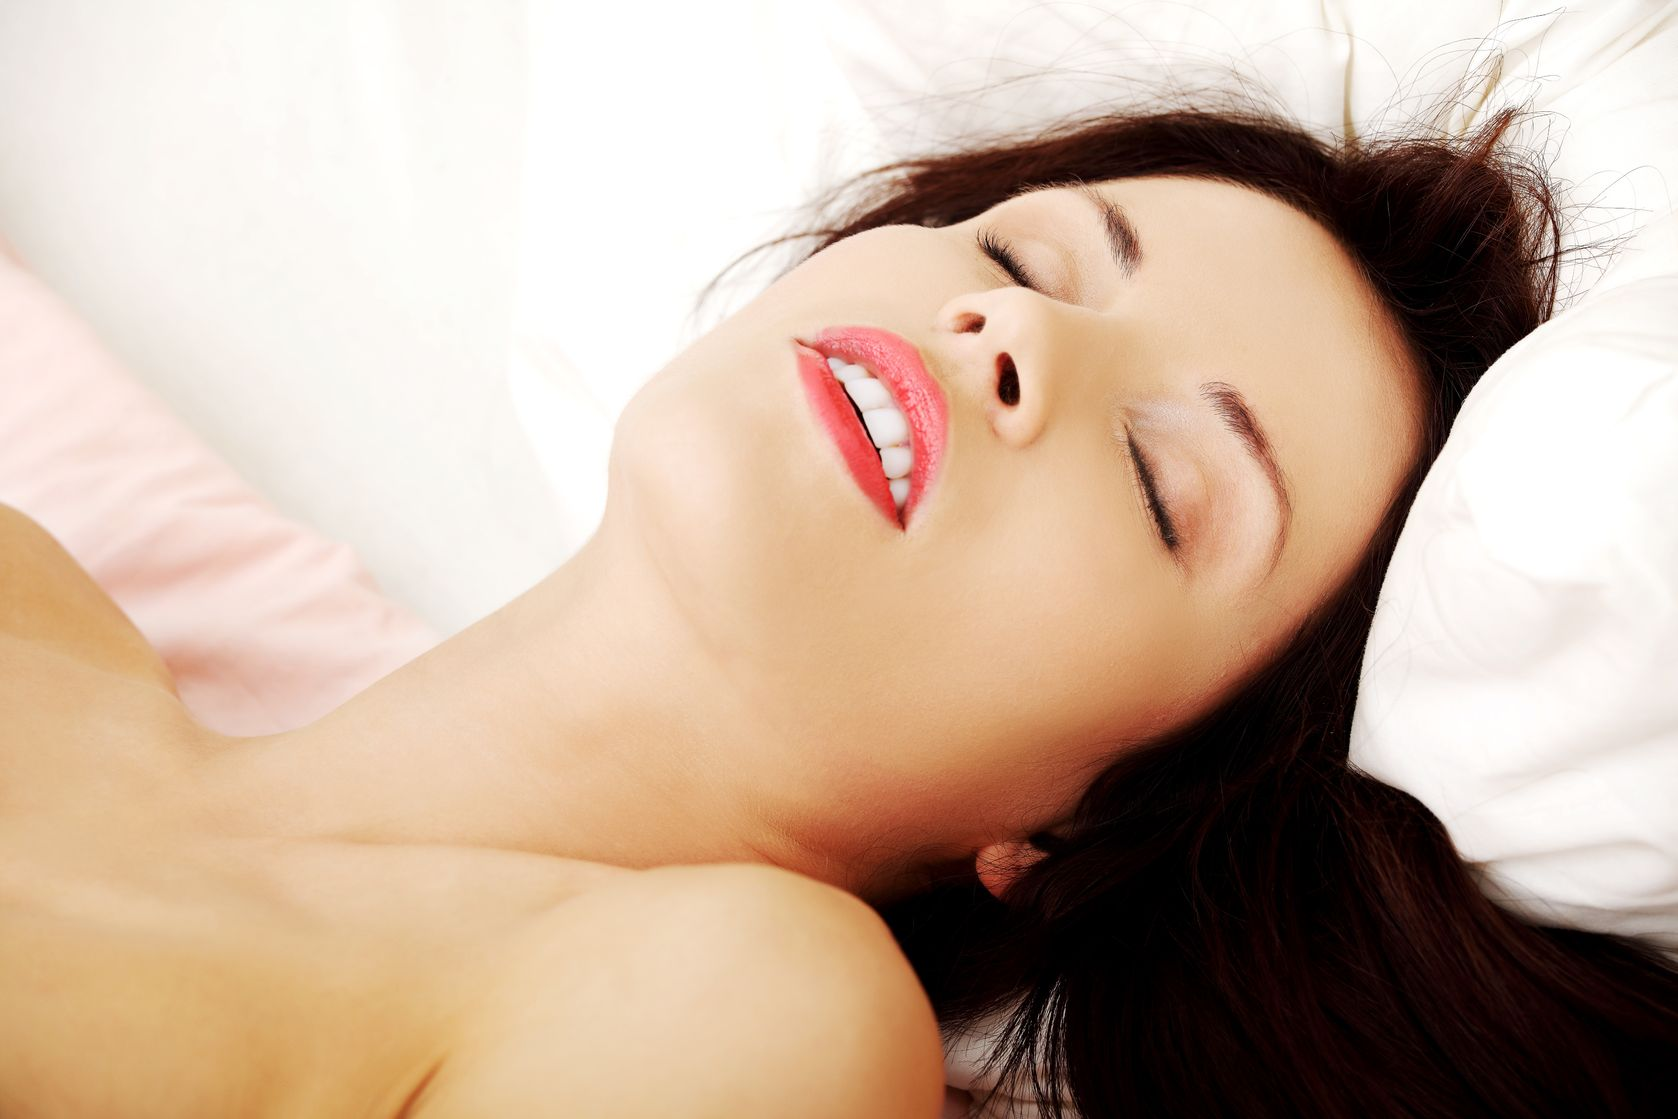 Medical how woman orgasm during intercourse